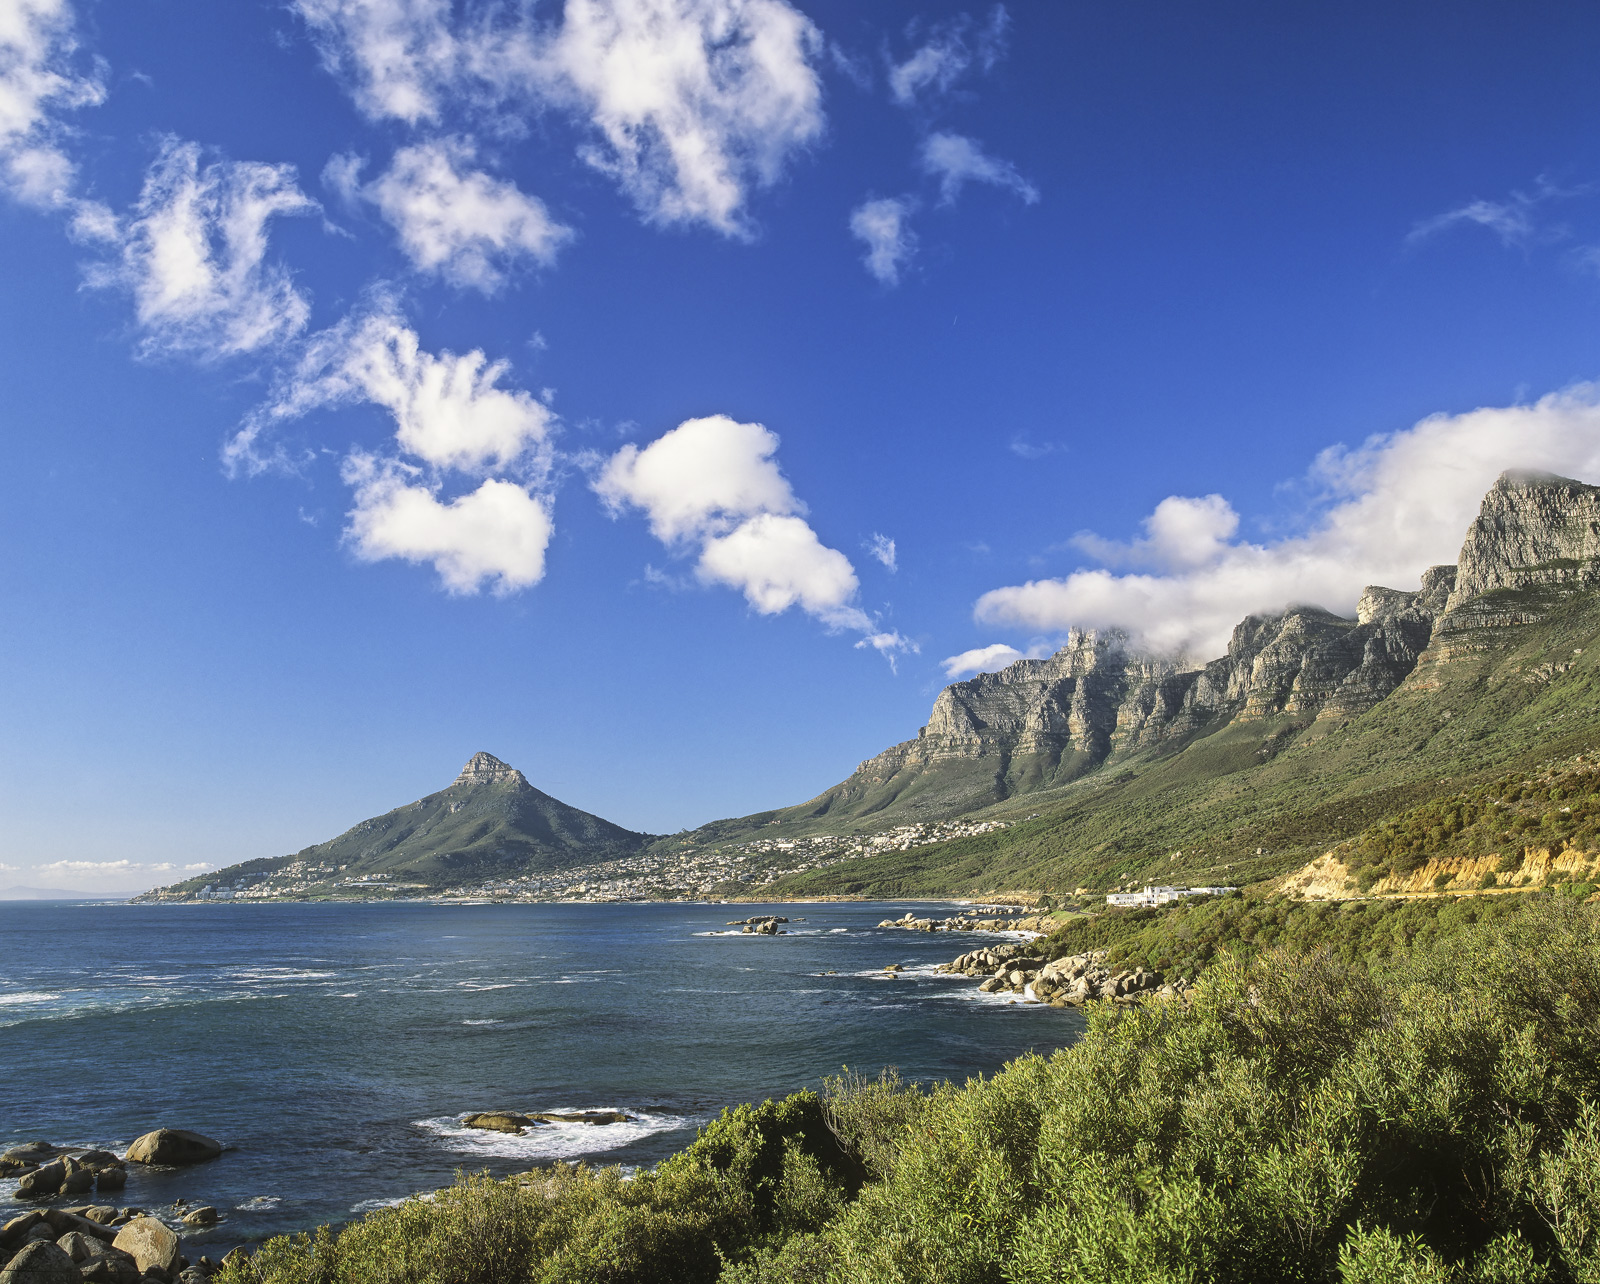 Smoke Signals, Llandudno, South Africa, Africa, afternoon, view, Table Mountain, escarpment, mist, cloud, Lions Head, wi, photo